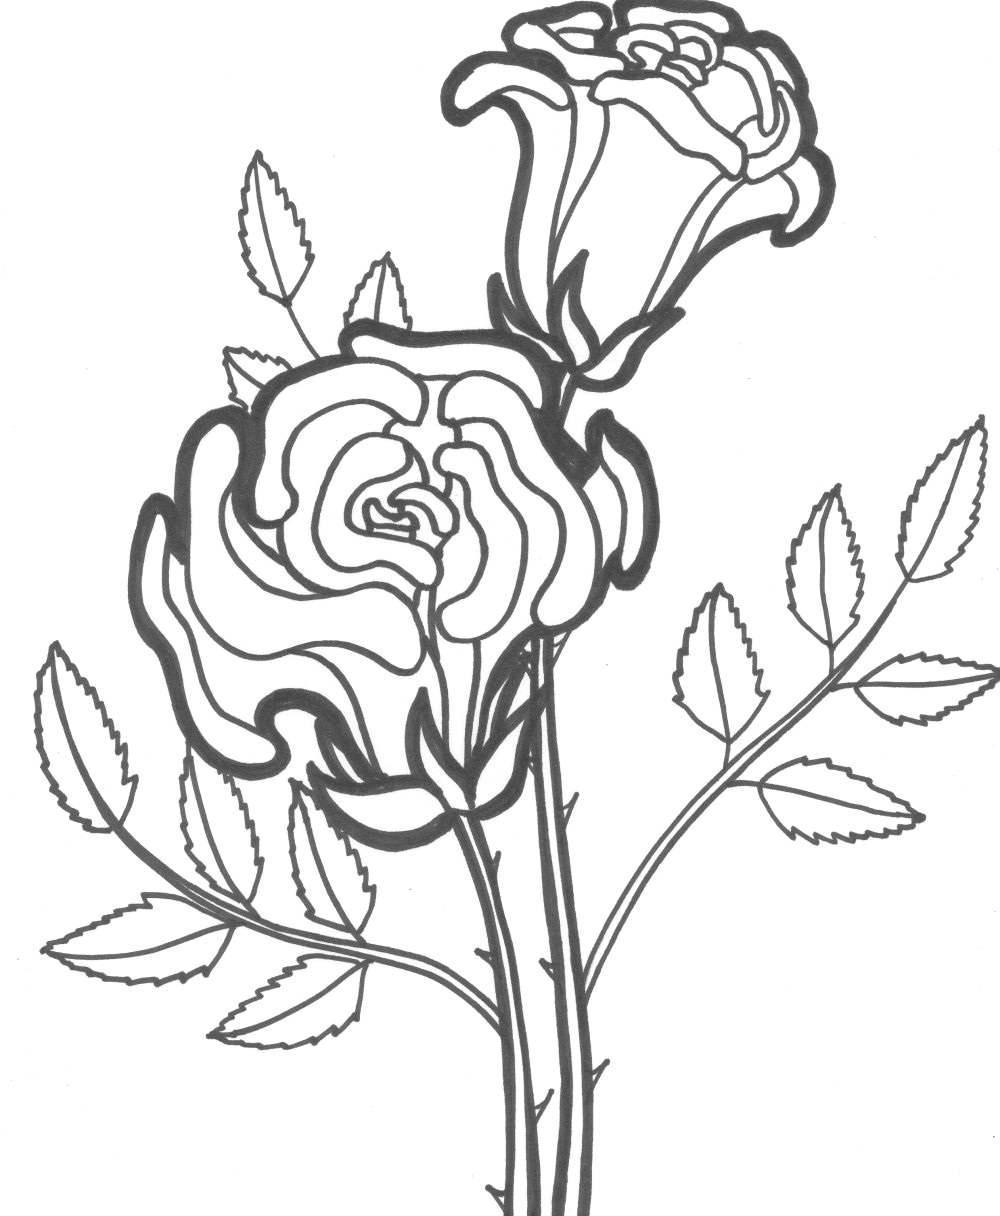 rose for coloring roses coloring pages to download and print for free rose for coloring 1 1